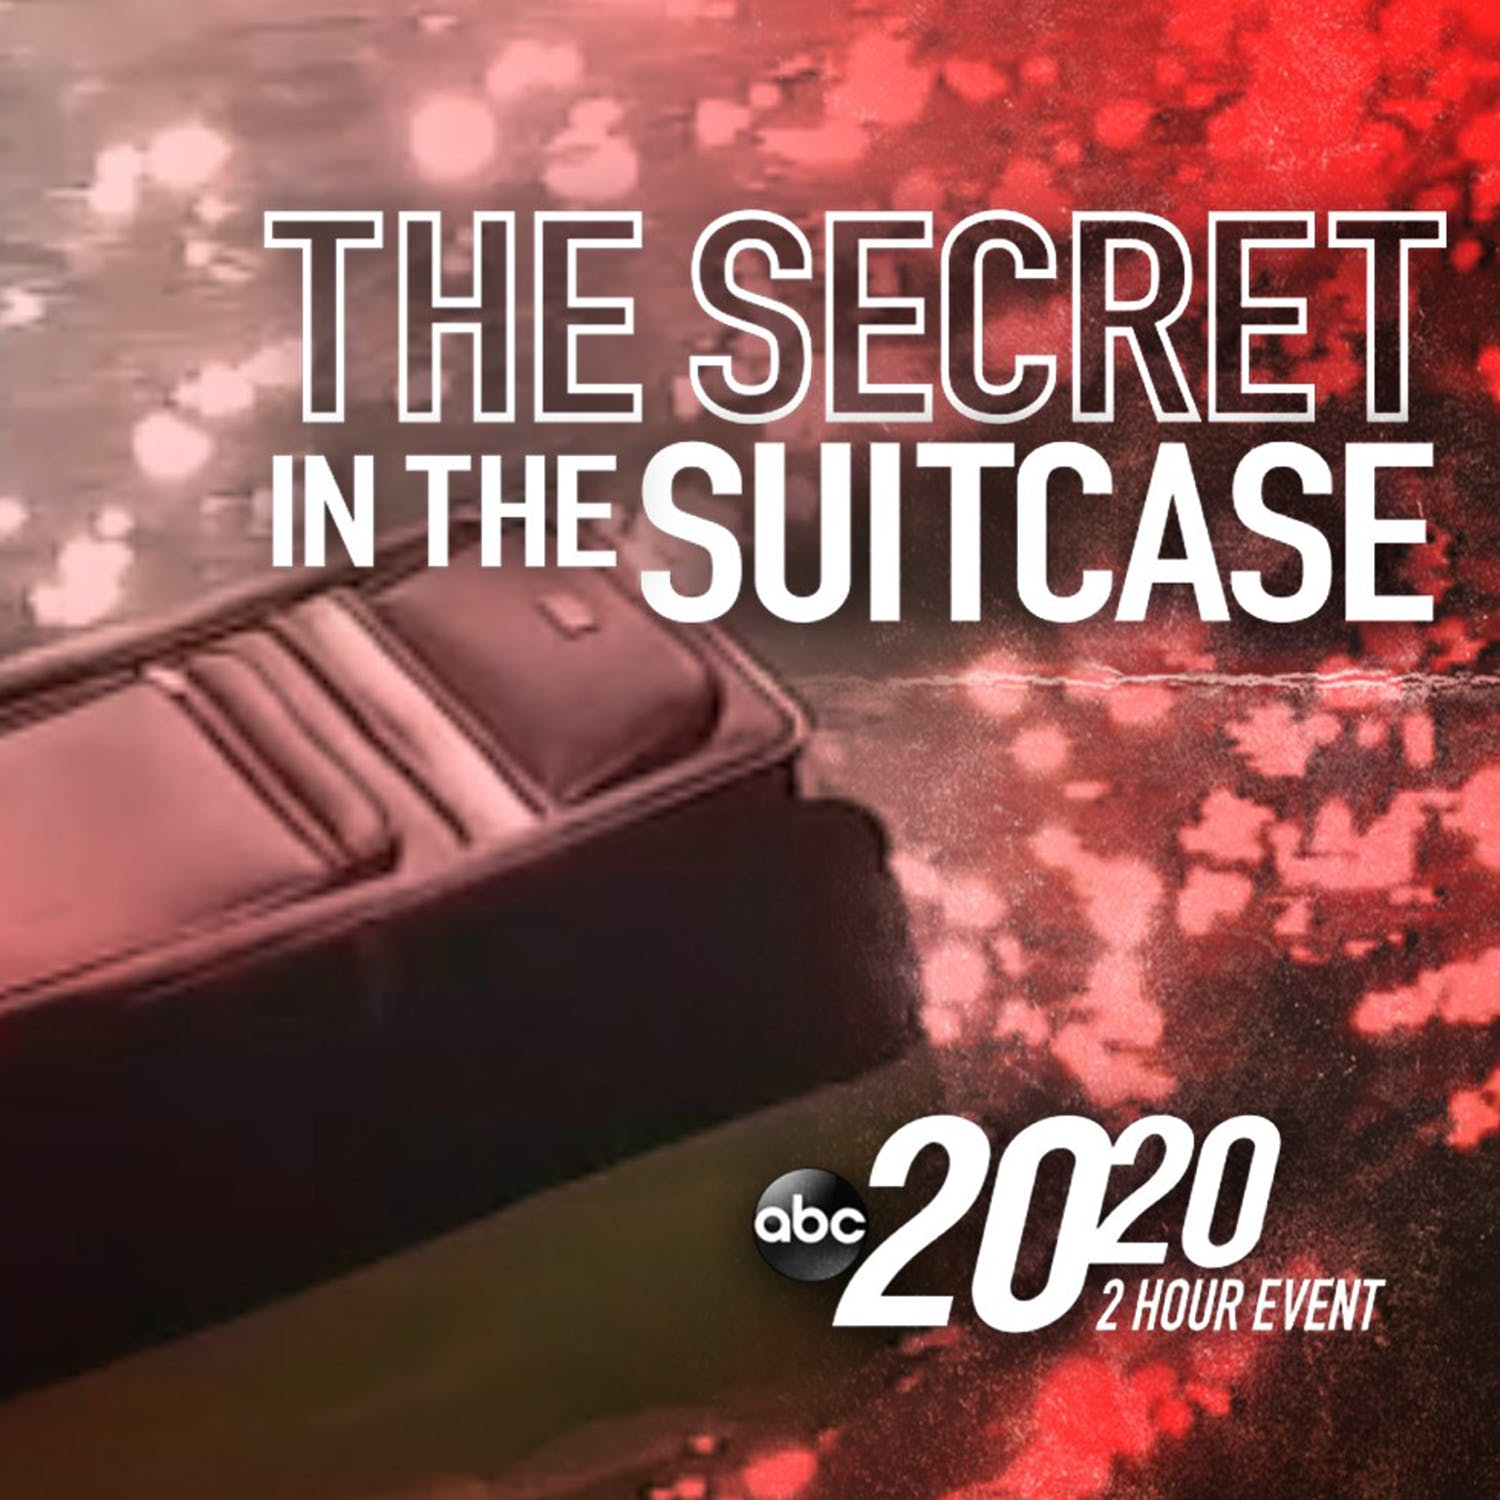 The Secret in the Suitcase